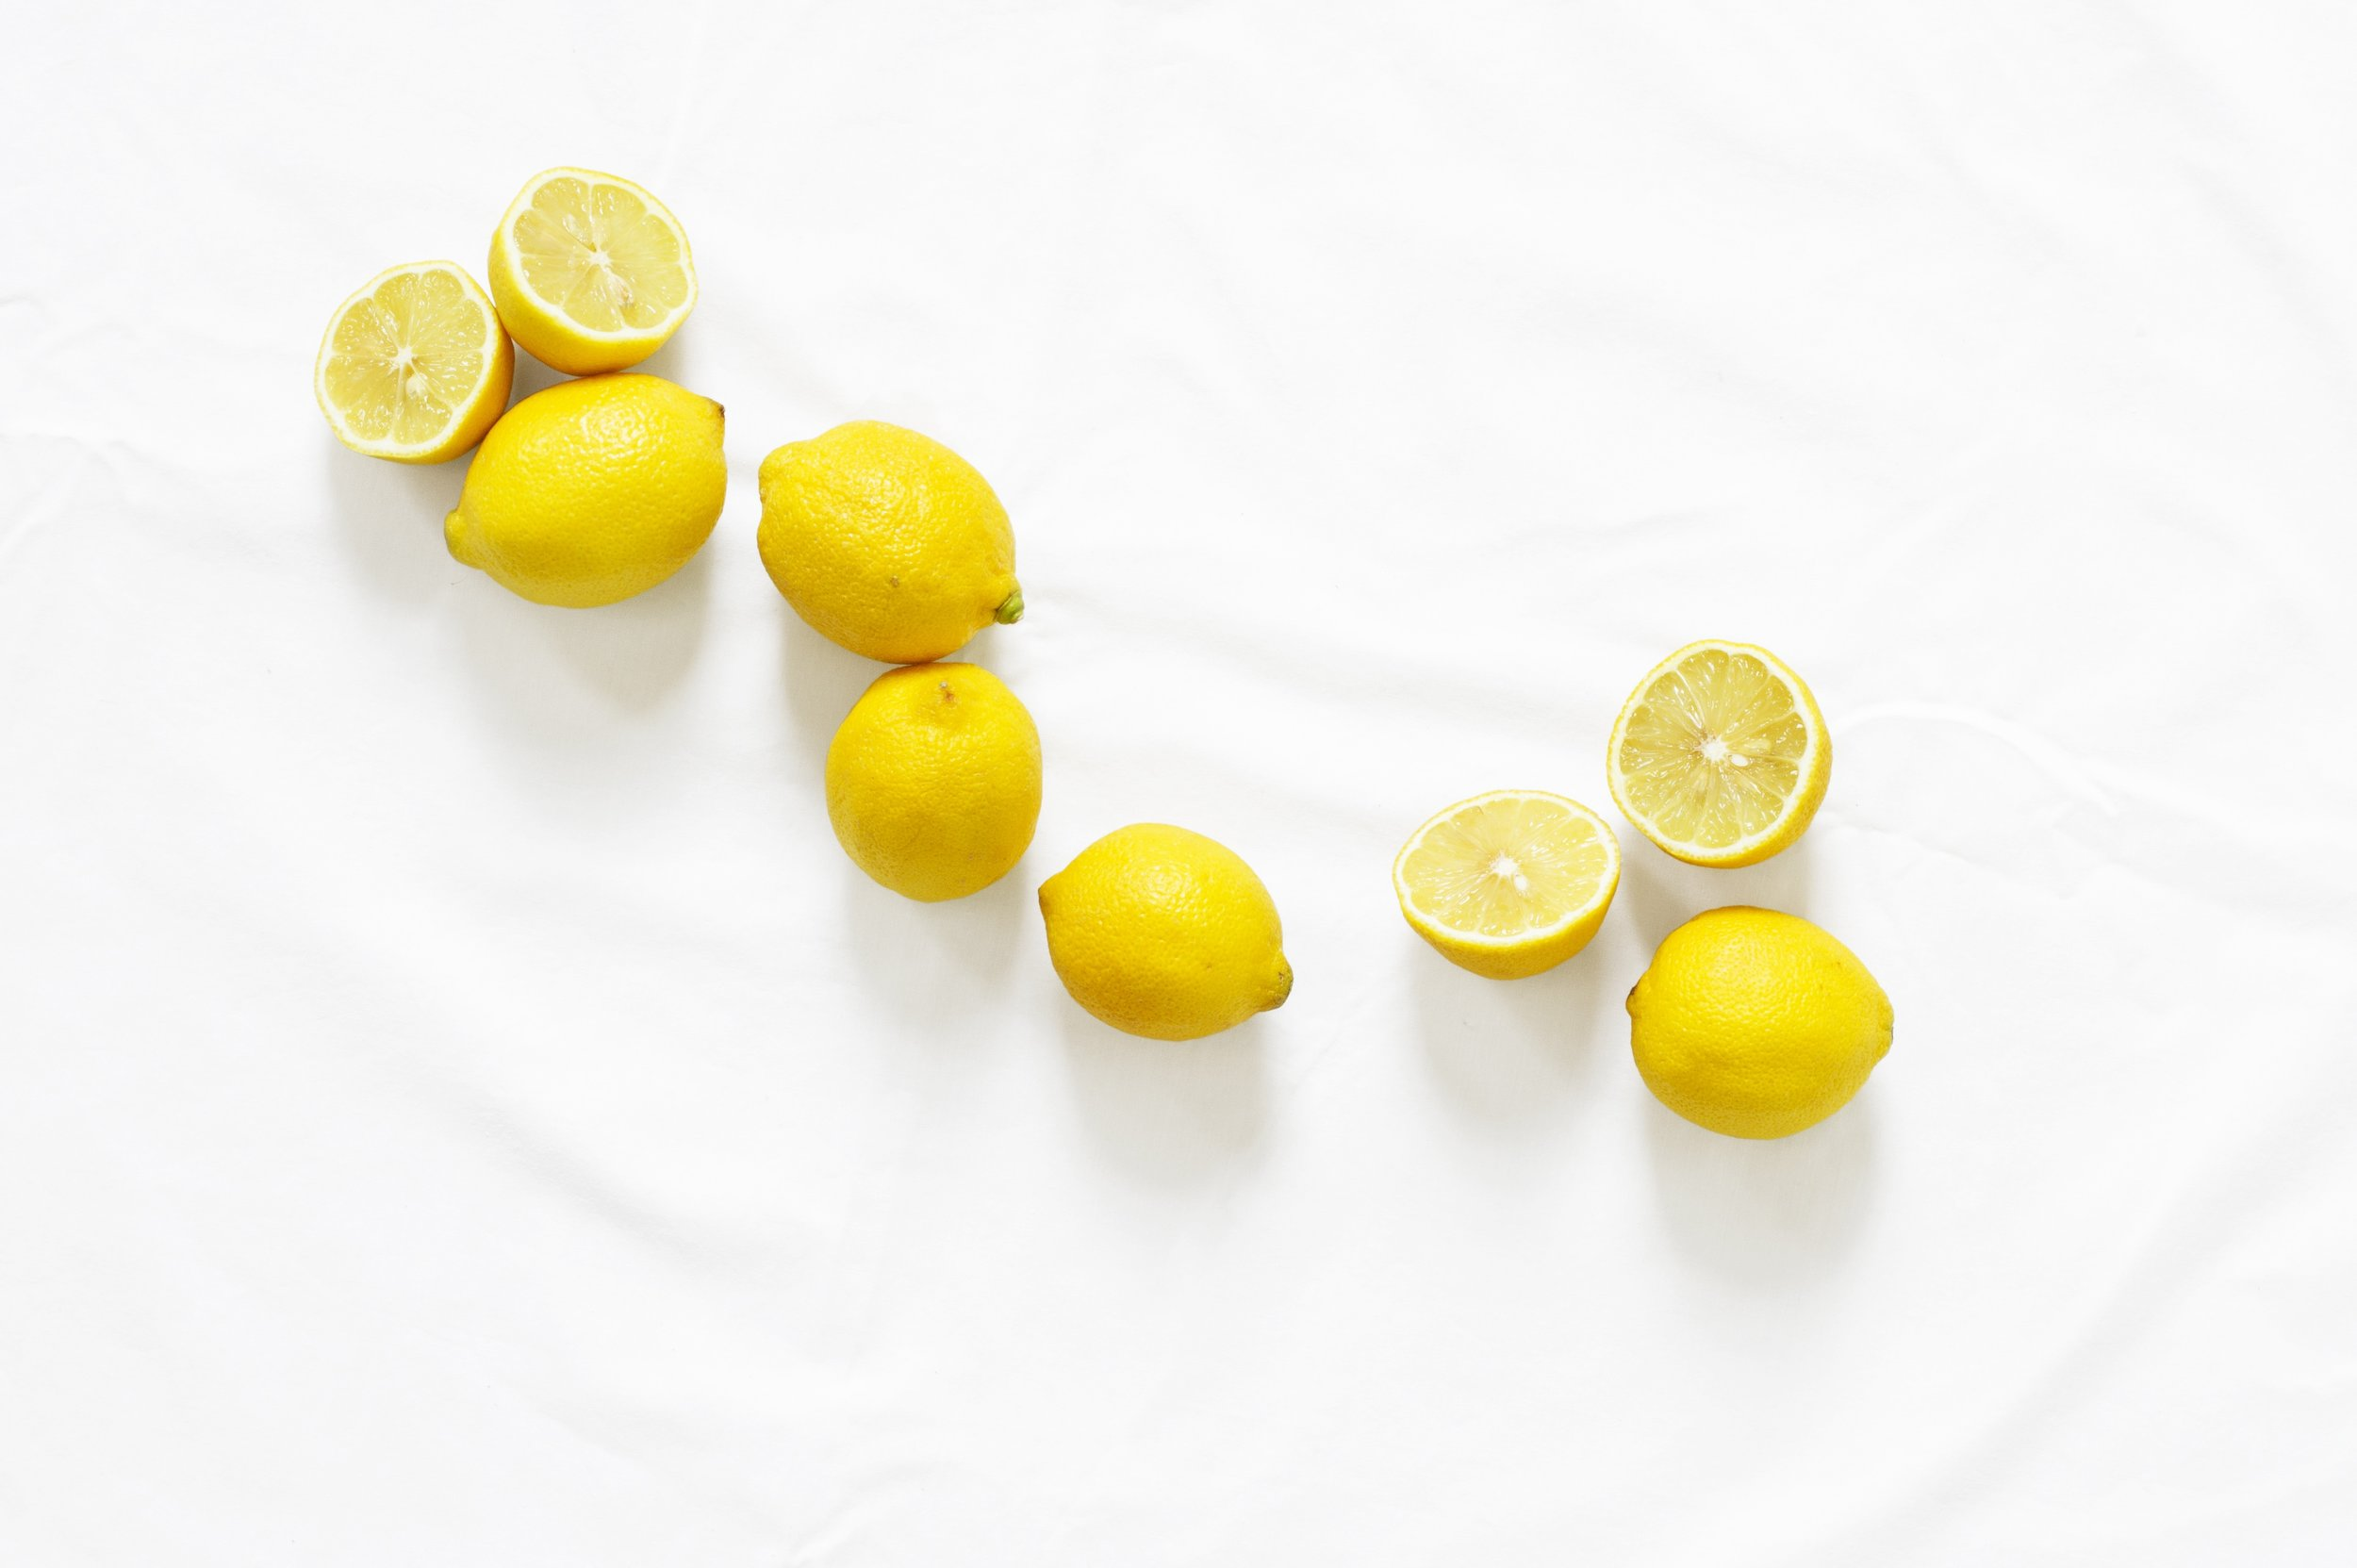 Lemons    Healing Nutrient:  Vitamin C  Strengthen Immune System  Recipe: Squeeze Lemon on top of food (done!)